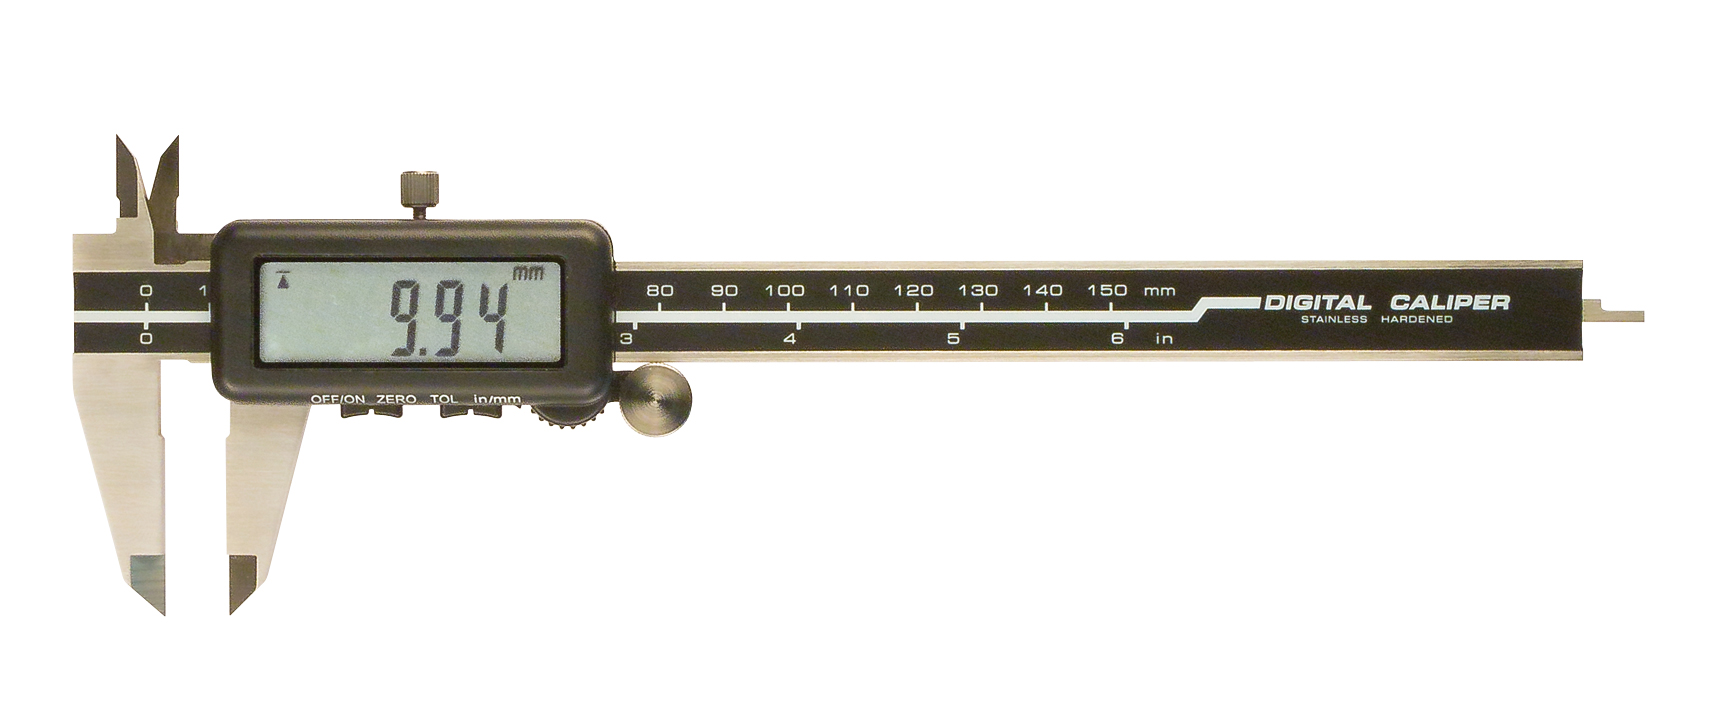 Digital caliper with tolerance function Go/NoGO 0-150 mm/0,01 mm